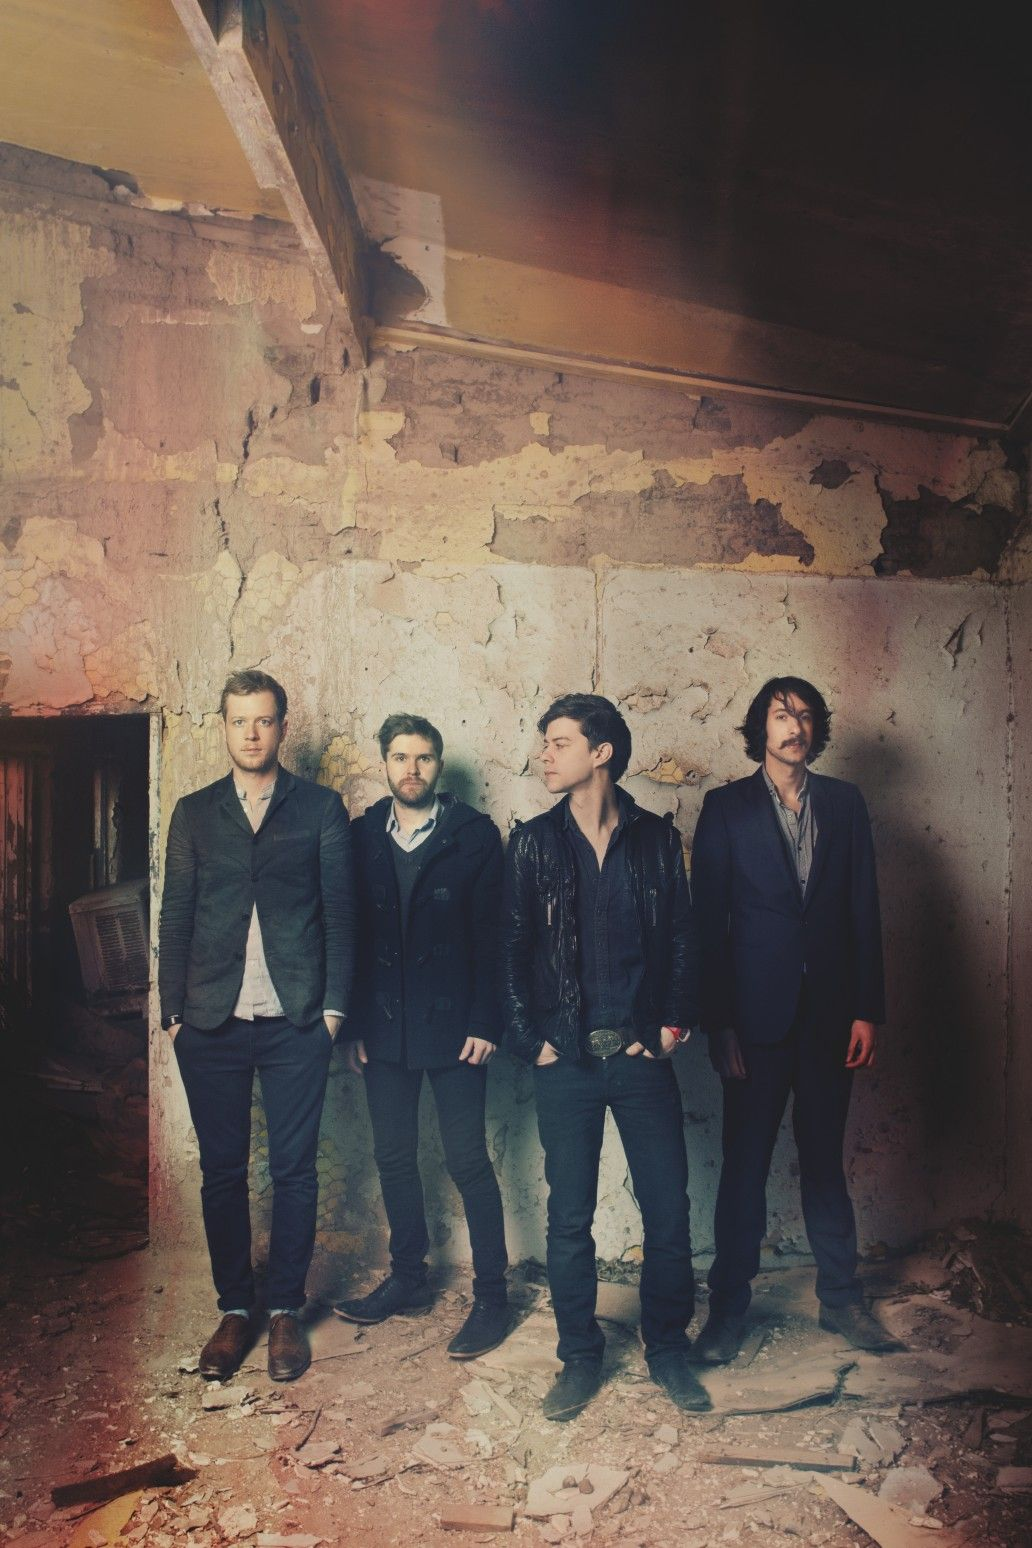 A Silent Film... im in love with this band!! Bands